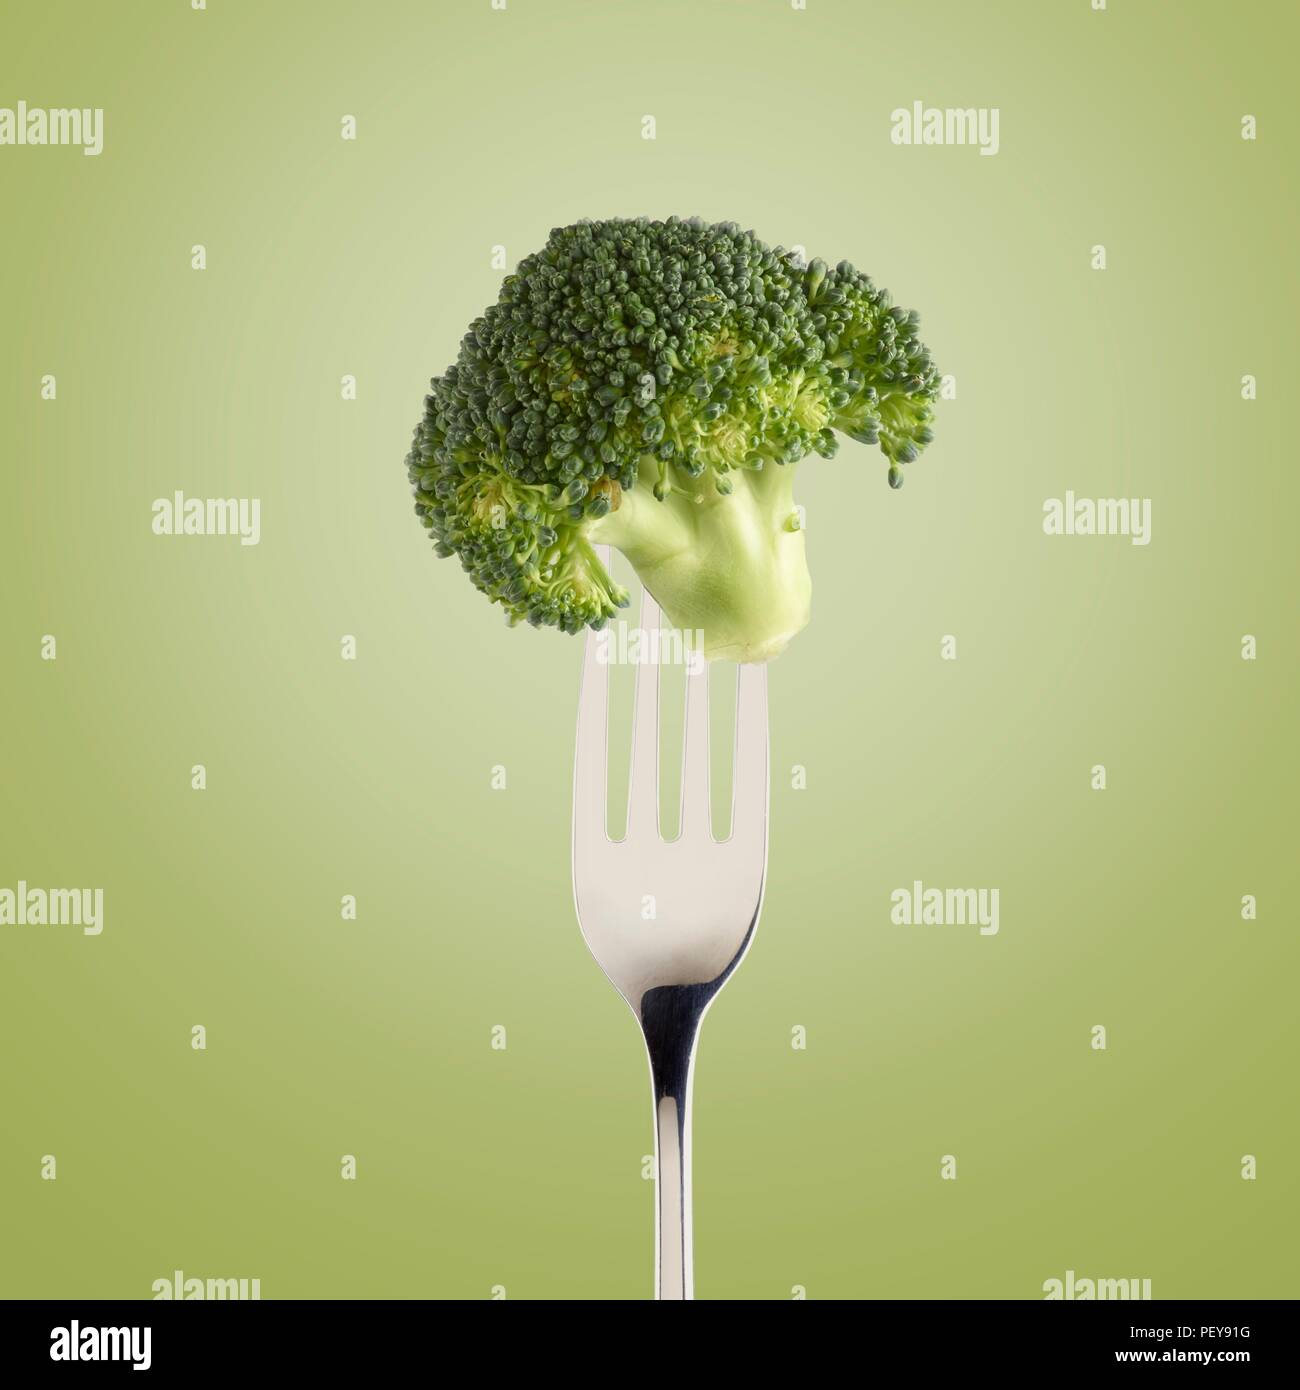 Broccoli on a fork. - Stock Image